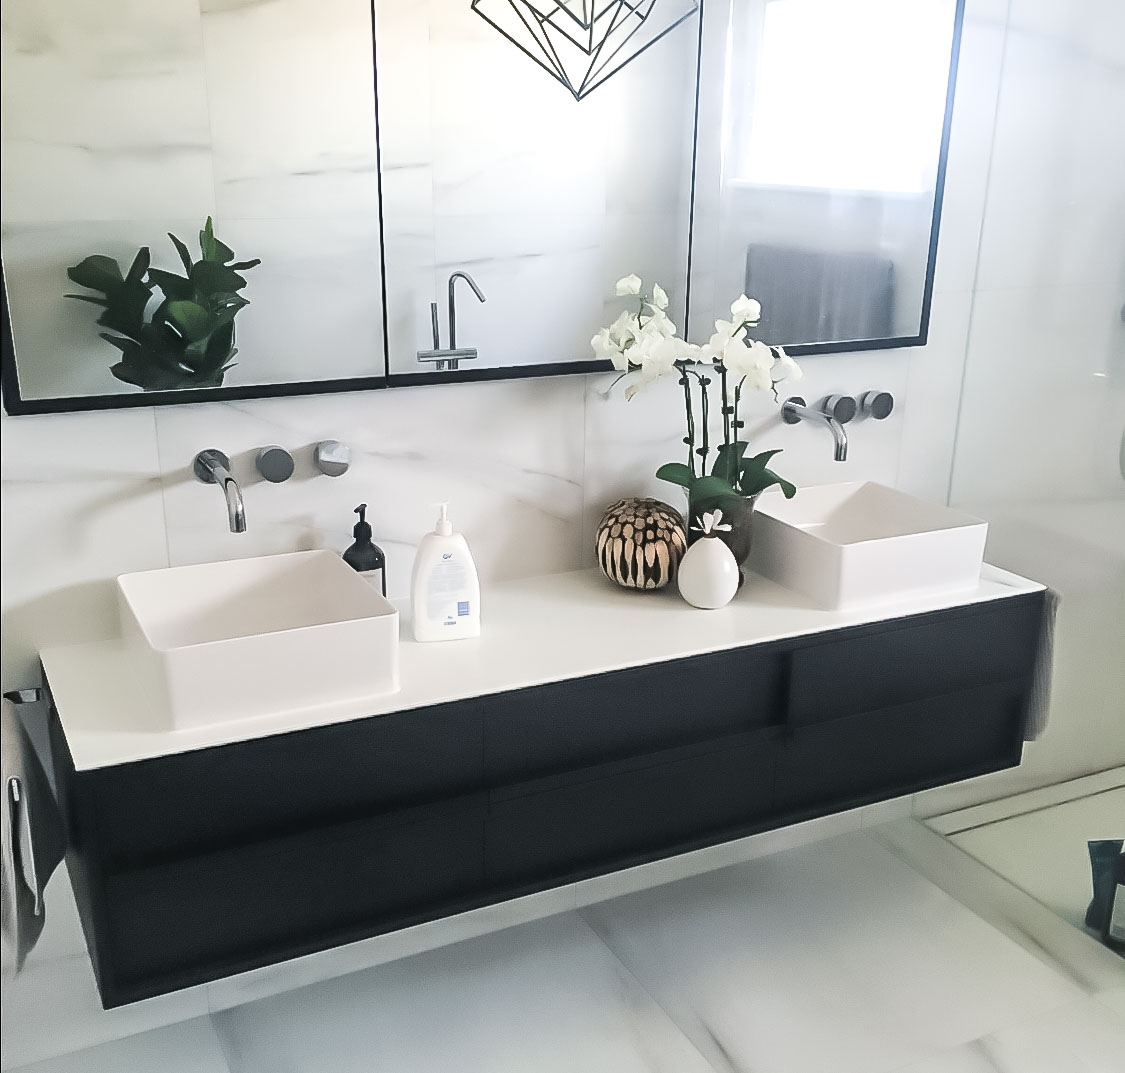 Nu Trend Bathroom Renovations on the North Shore completed project with EZY PROJECTS